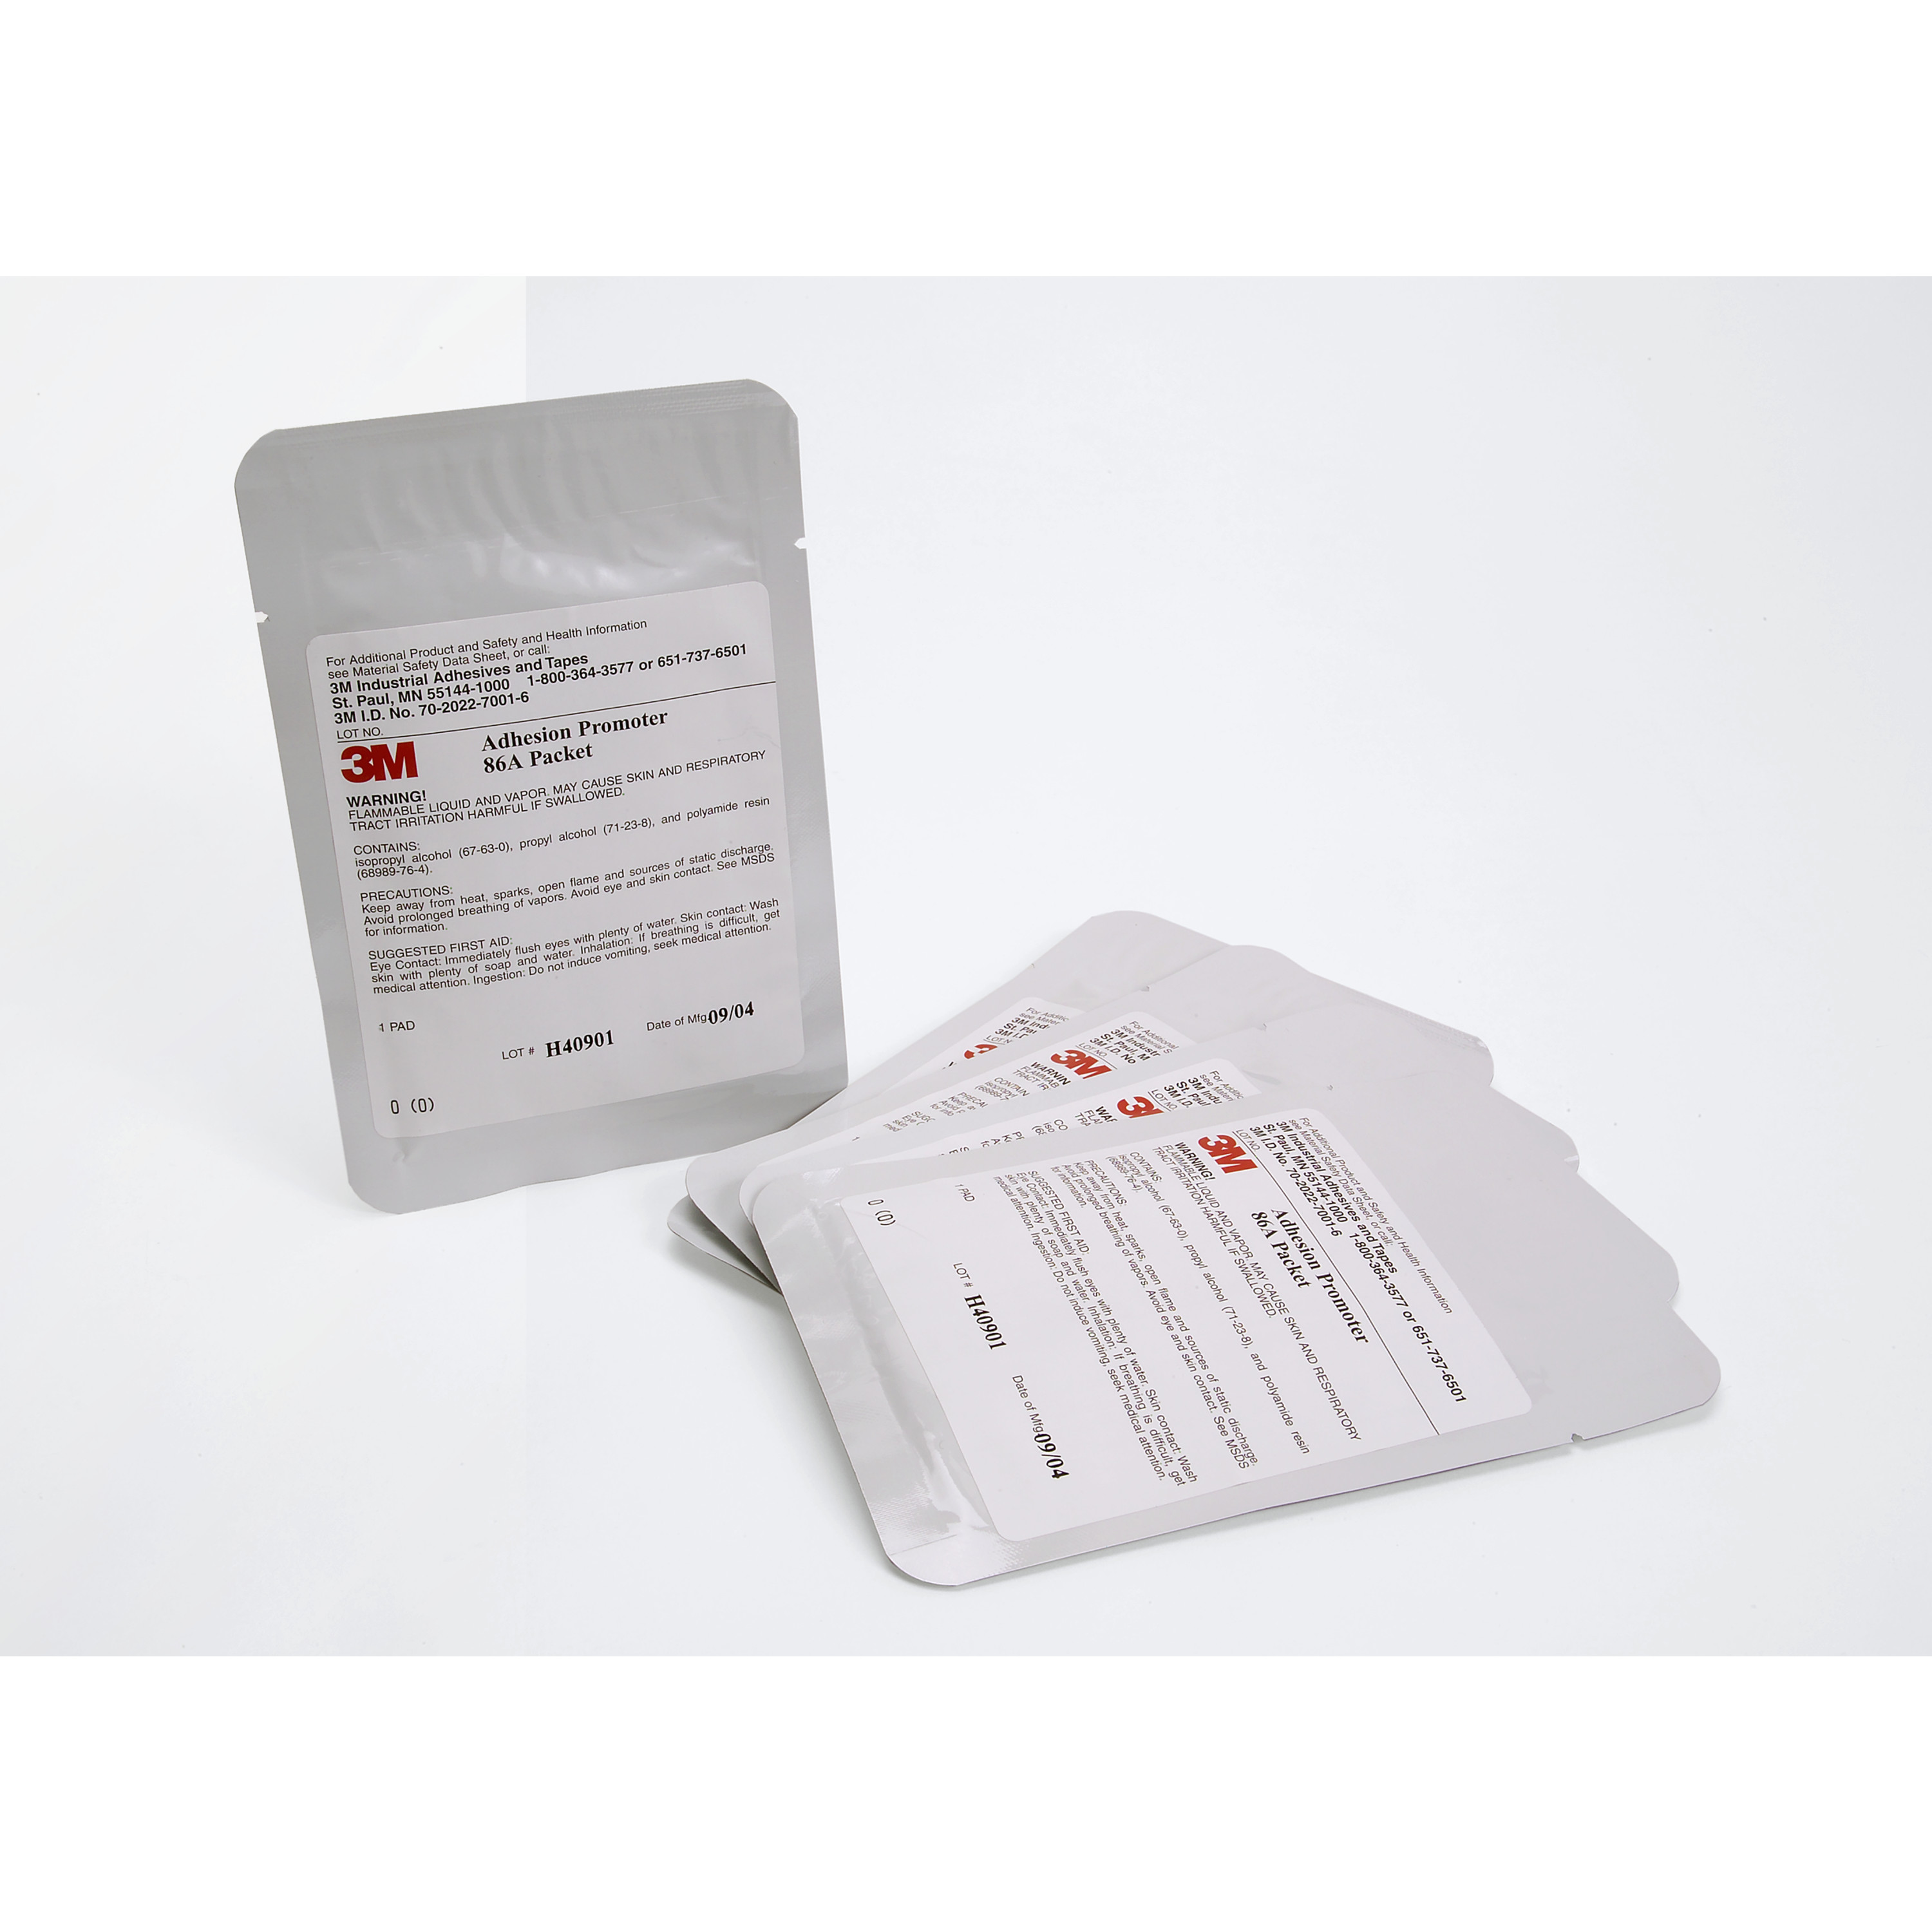 3M™ Adhesion Promoter 86A Transparent, 7 in x 7 in, 5 Pads/Pack, 100 Pack/Case